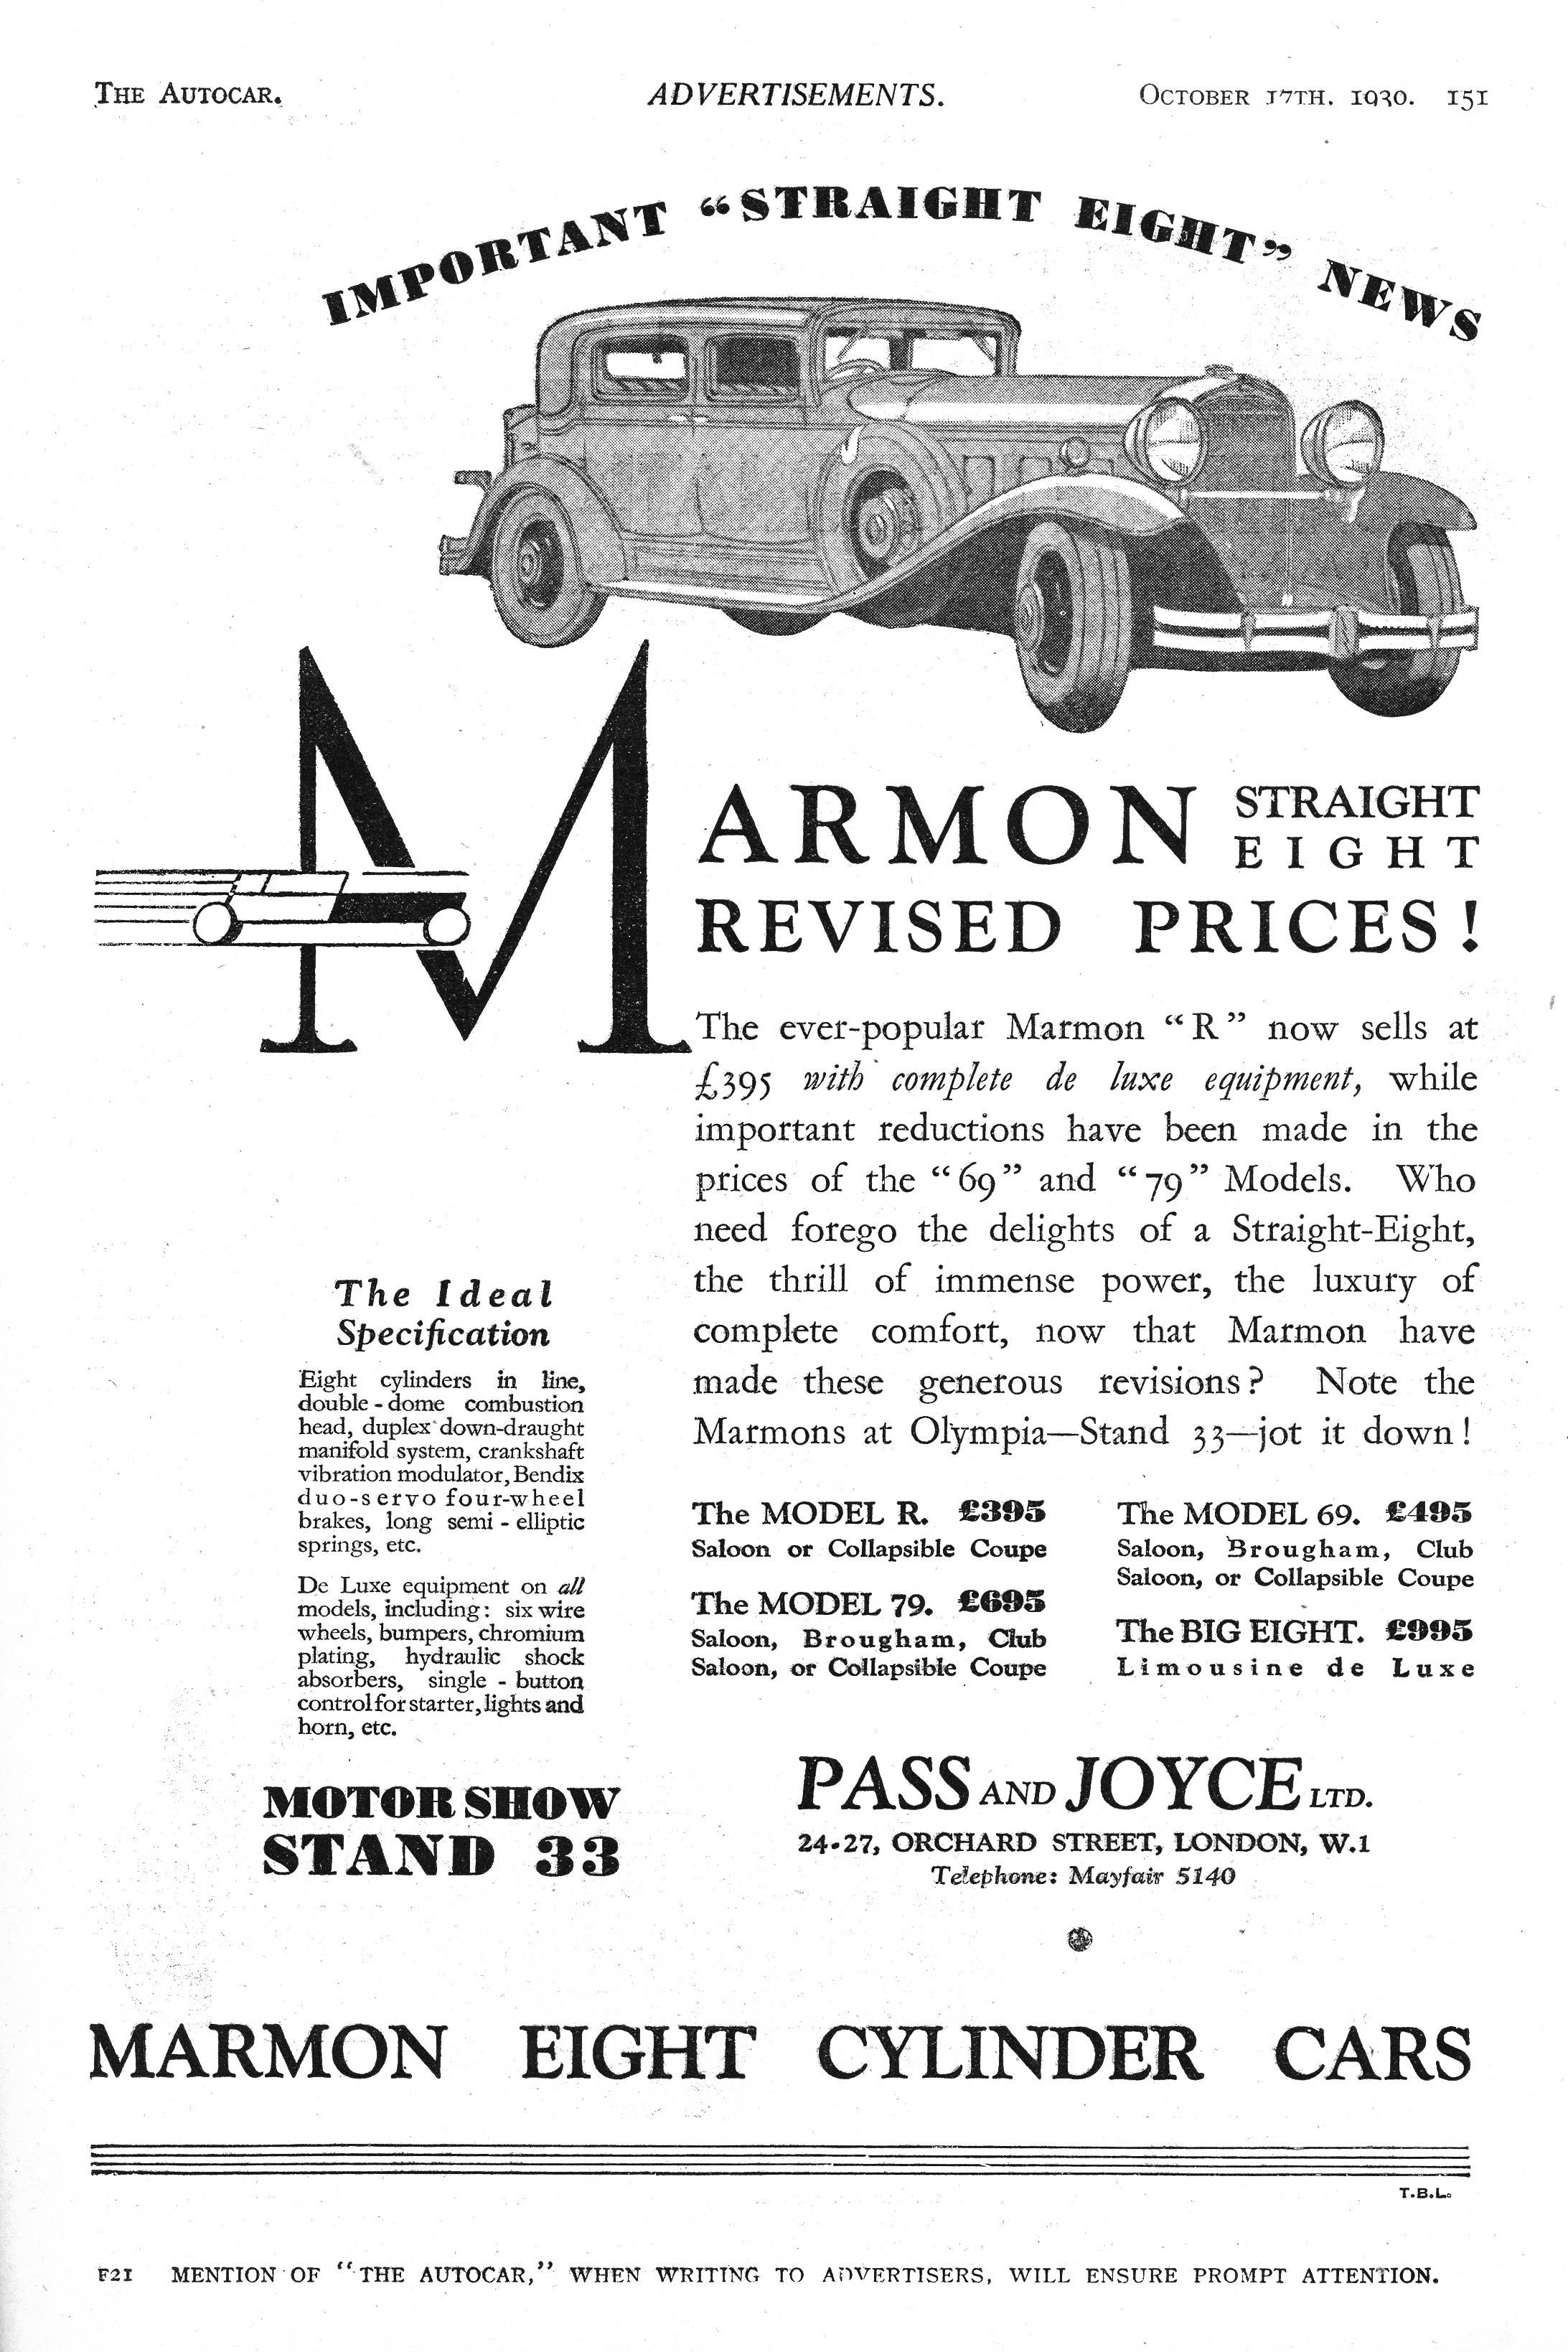 Marmon Eight Cylinder Car Motor Autocar Advert 1930 | Old Rides of ...